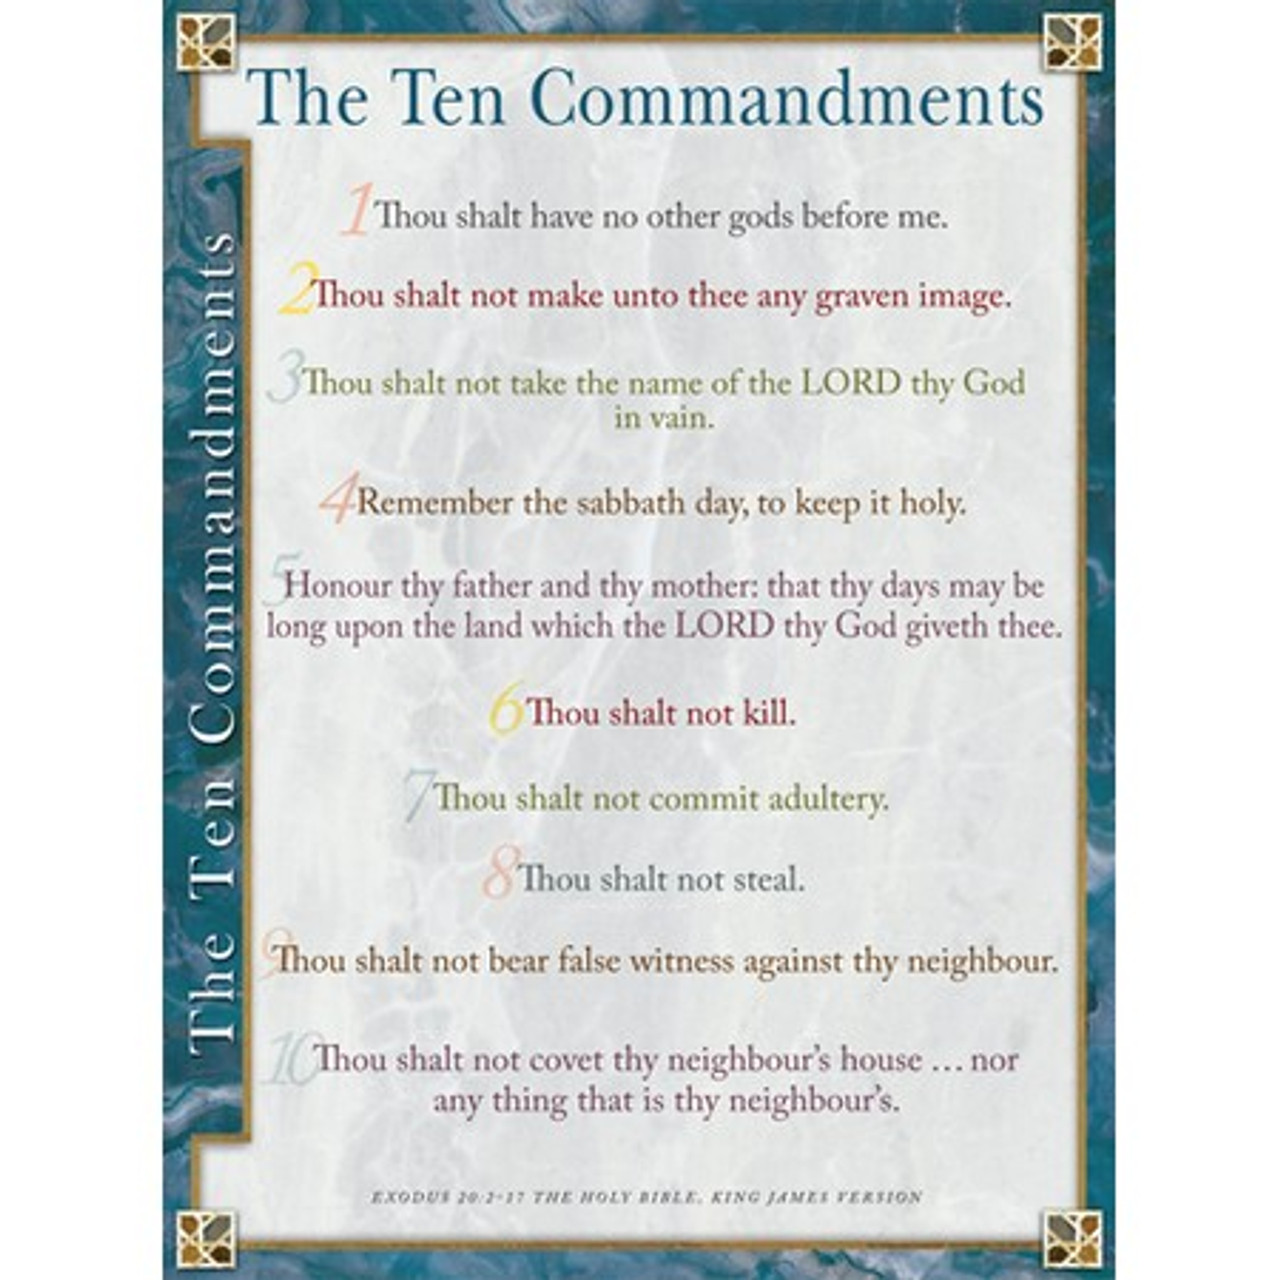 image about 10 Commandments Poster Printable titled 10 Commandments KJV Wall Chart - Laminated